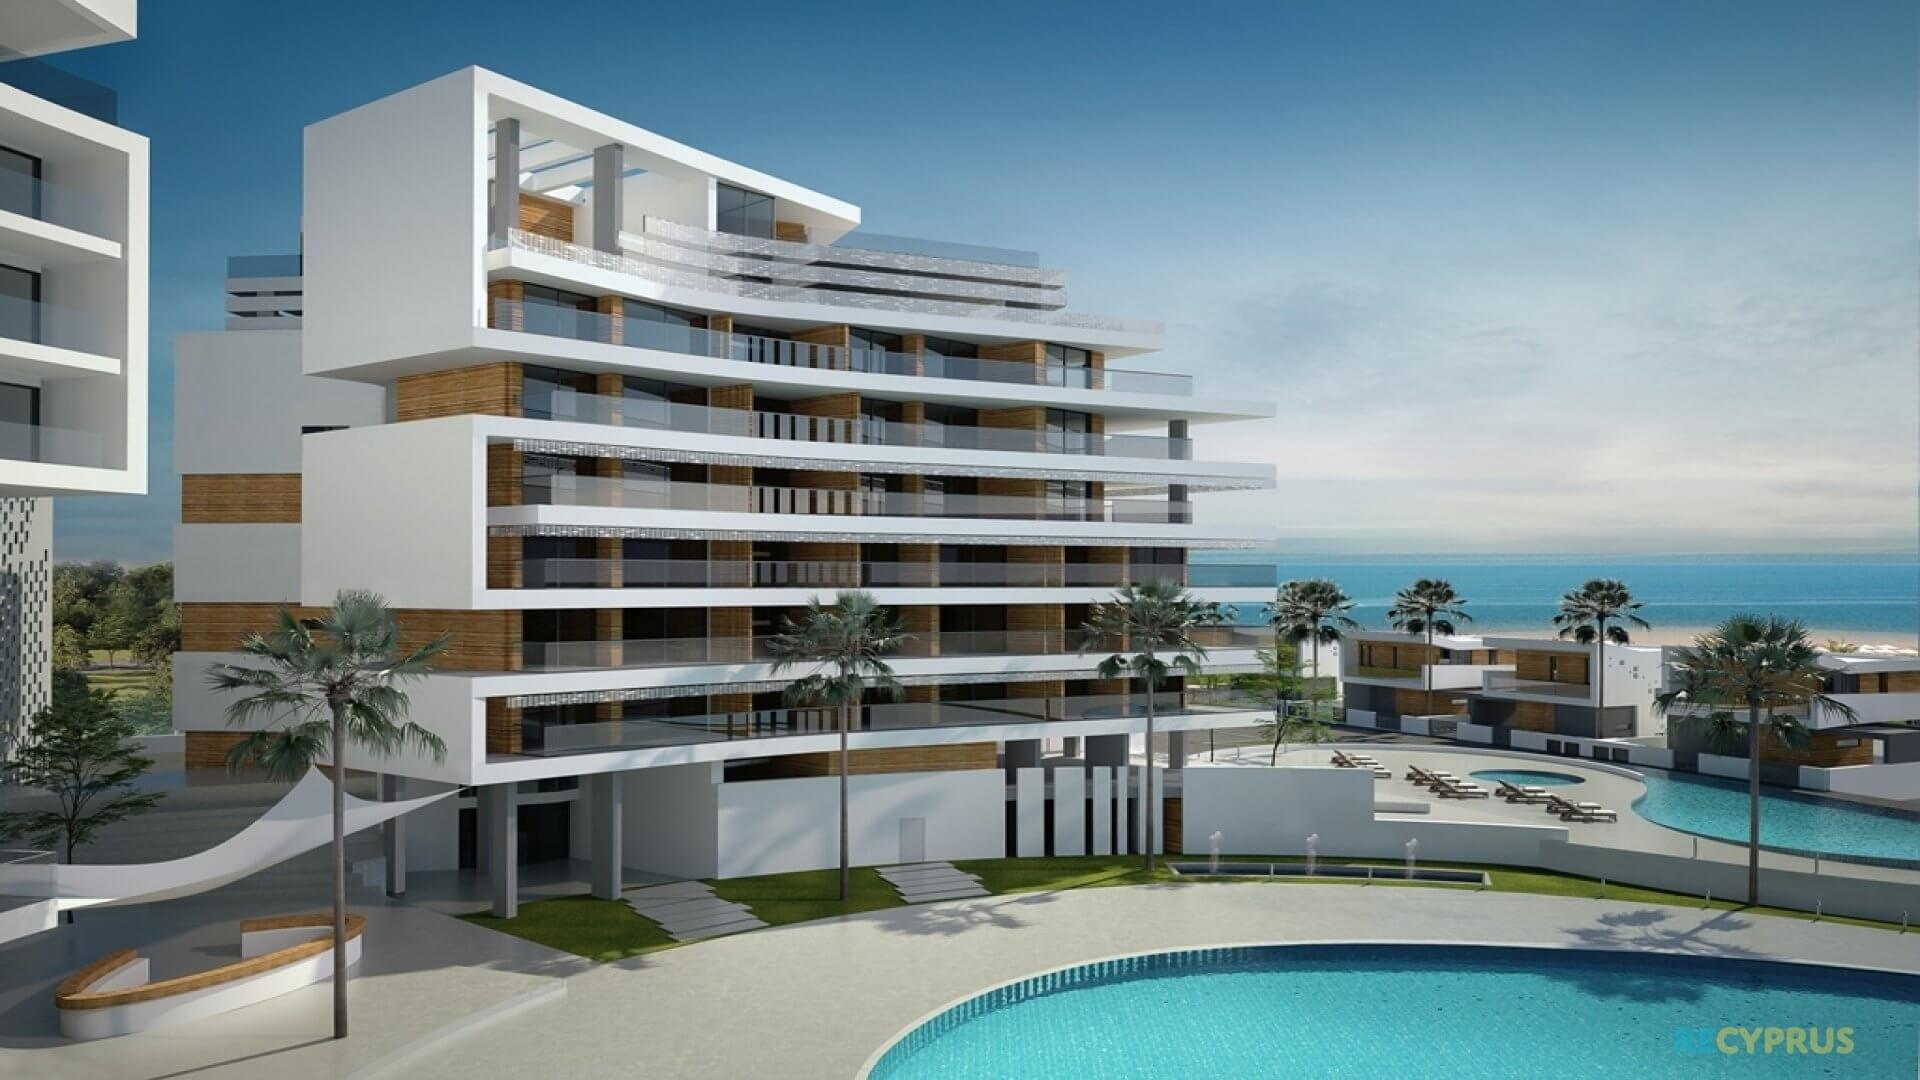 Apartment for sale Ayia Thekla Famagusta Cyprus 1 3450